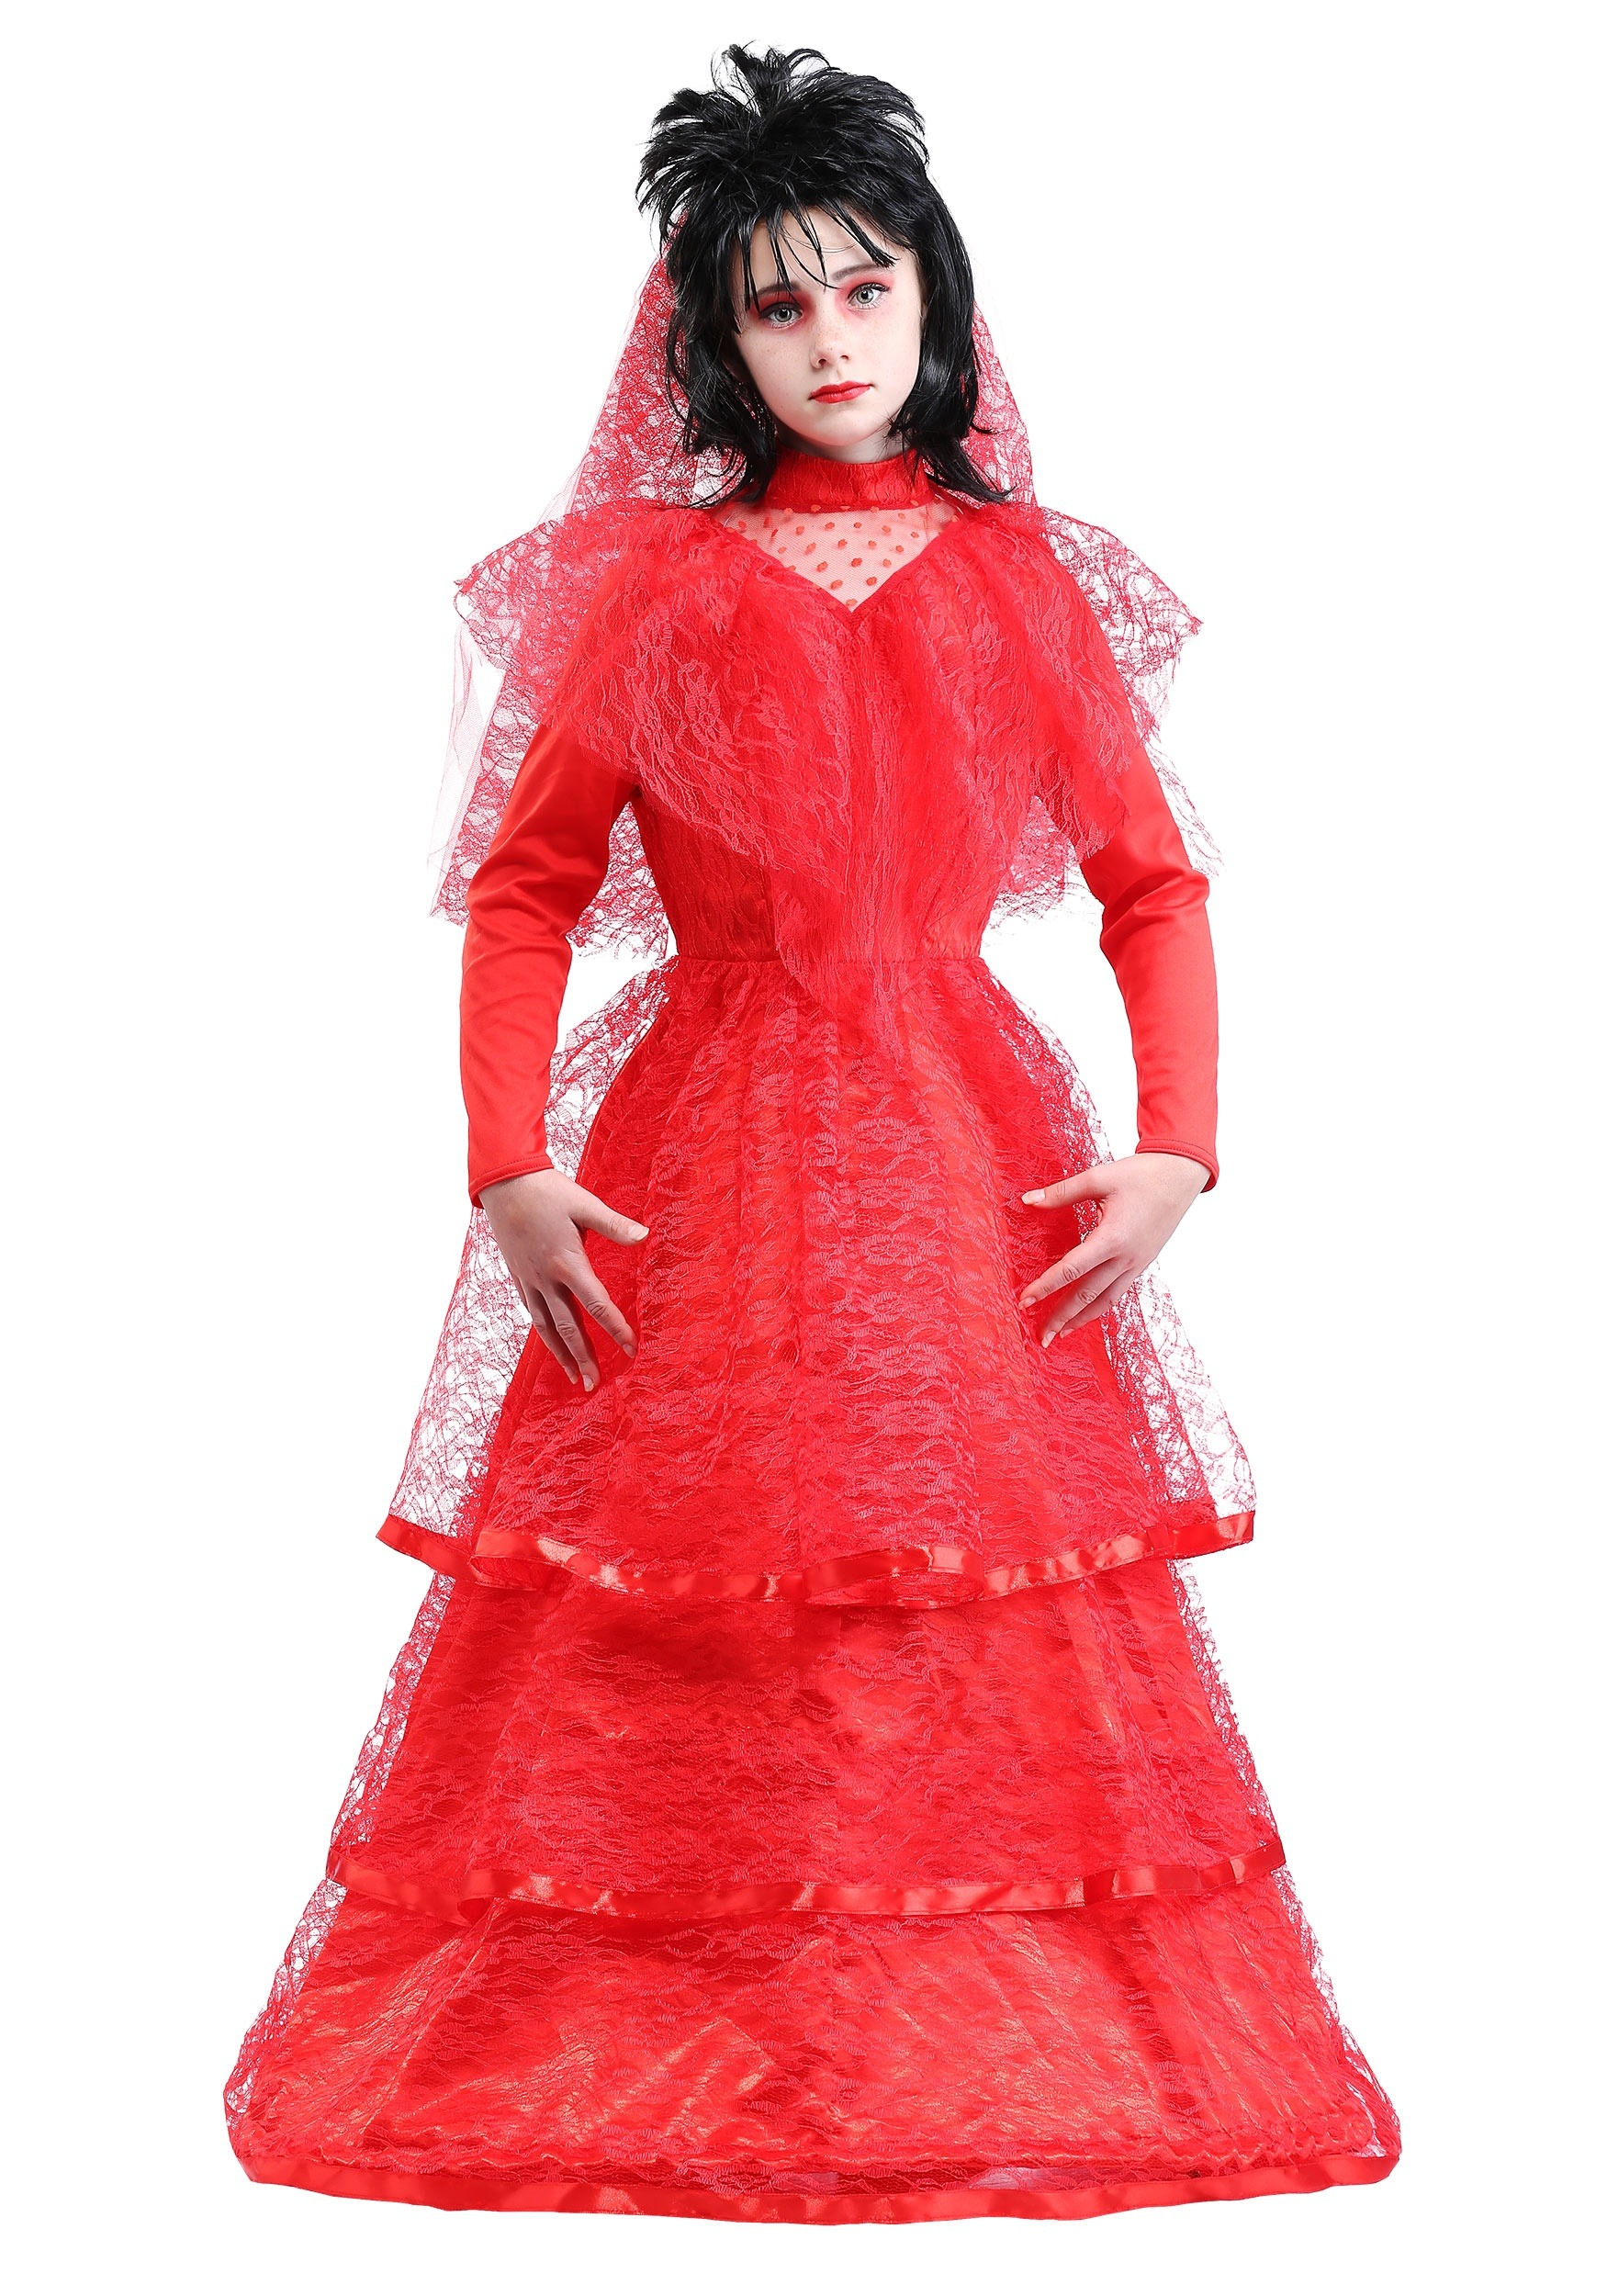 Red Gothic Wedding Dress Costume for Kids